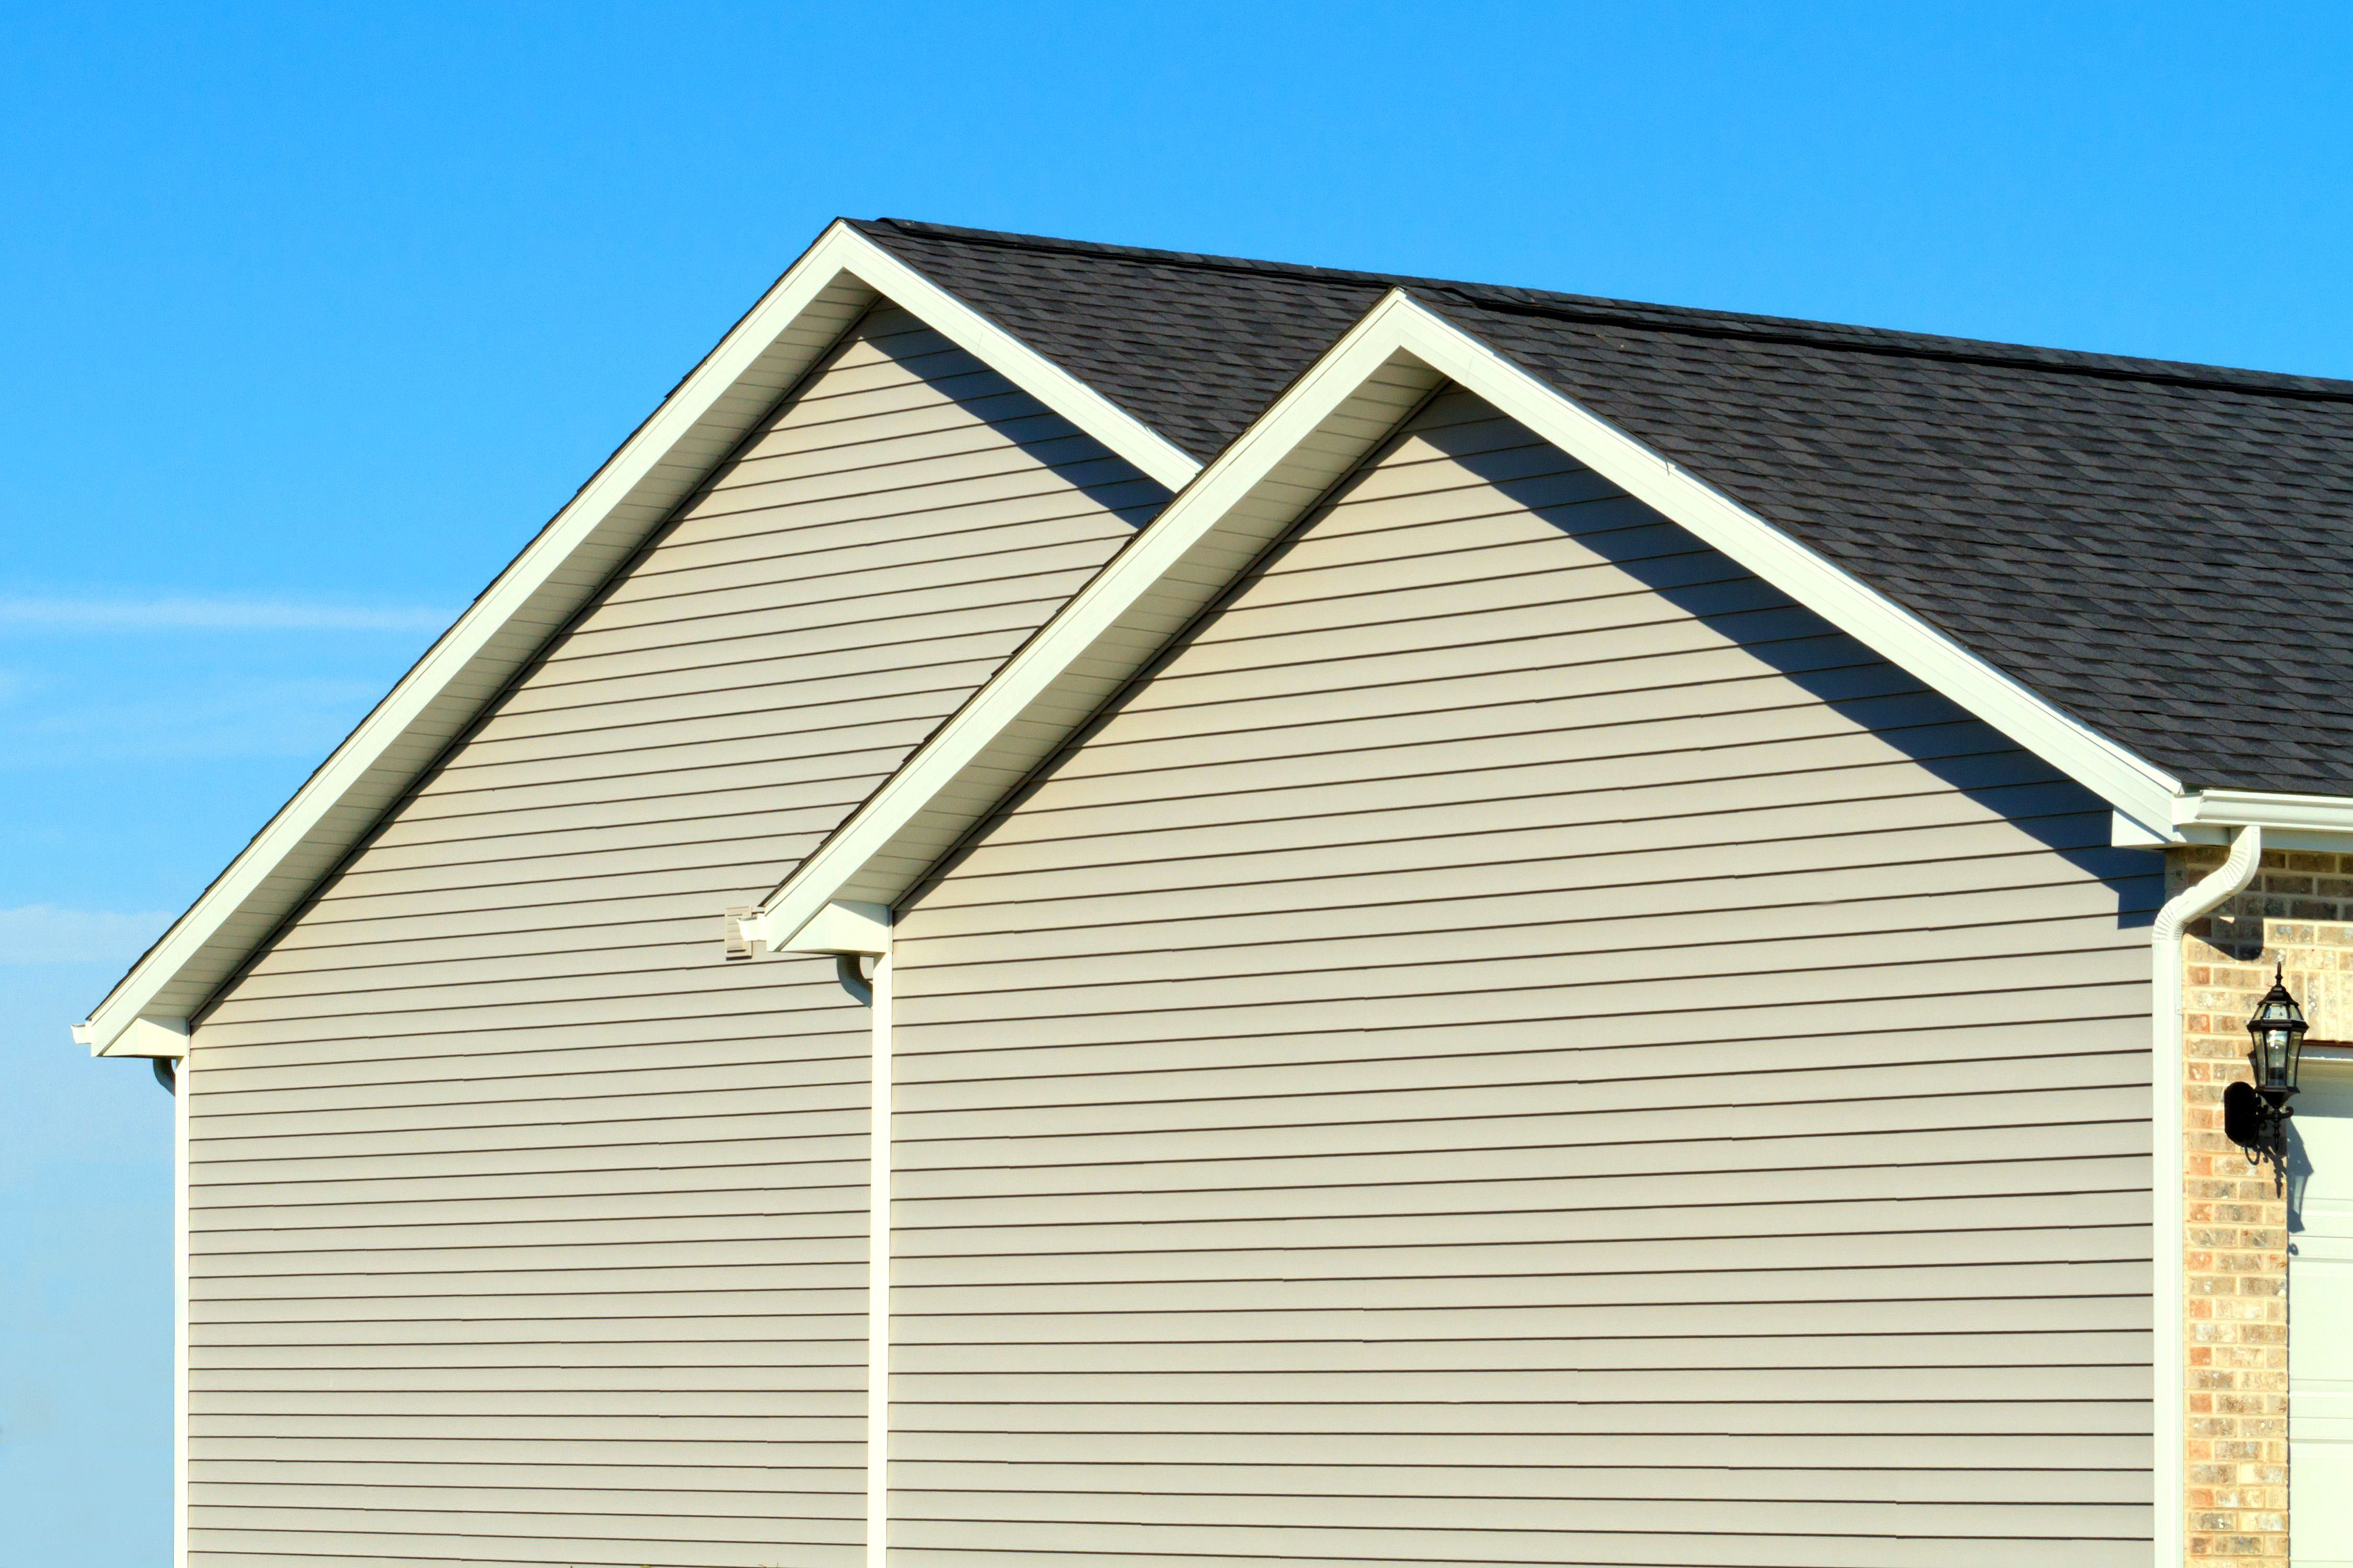 A new home showing vinyl siding.